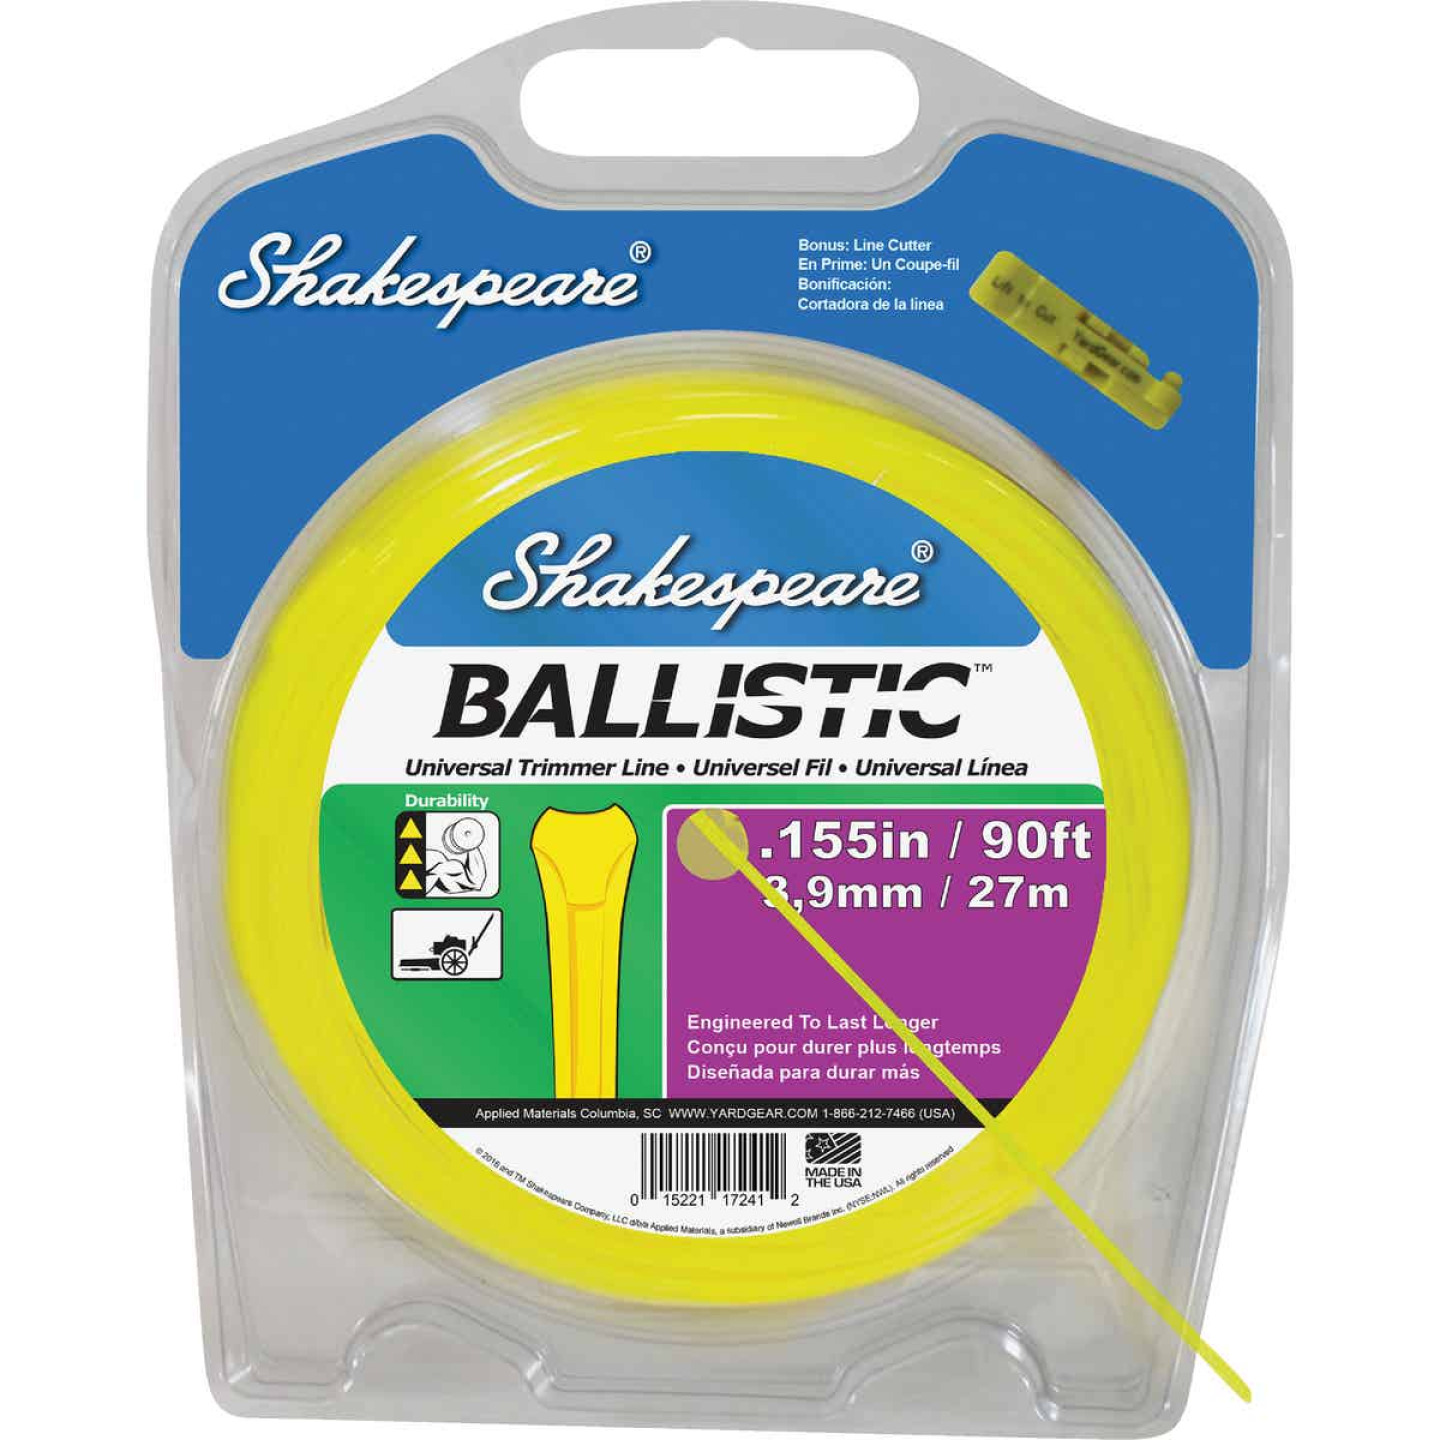 Shakespeare Ballistic 0.155 In. x 90 Ft. Universal Trimmer Line Image 1